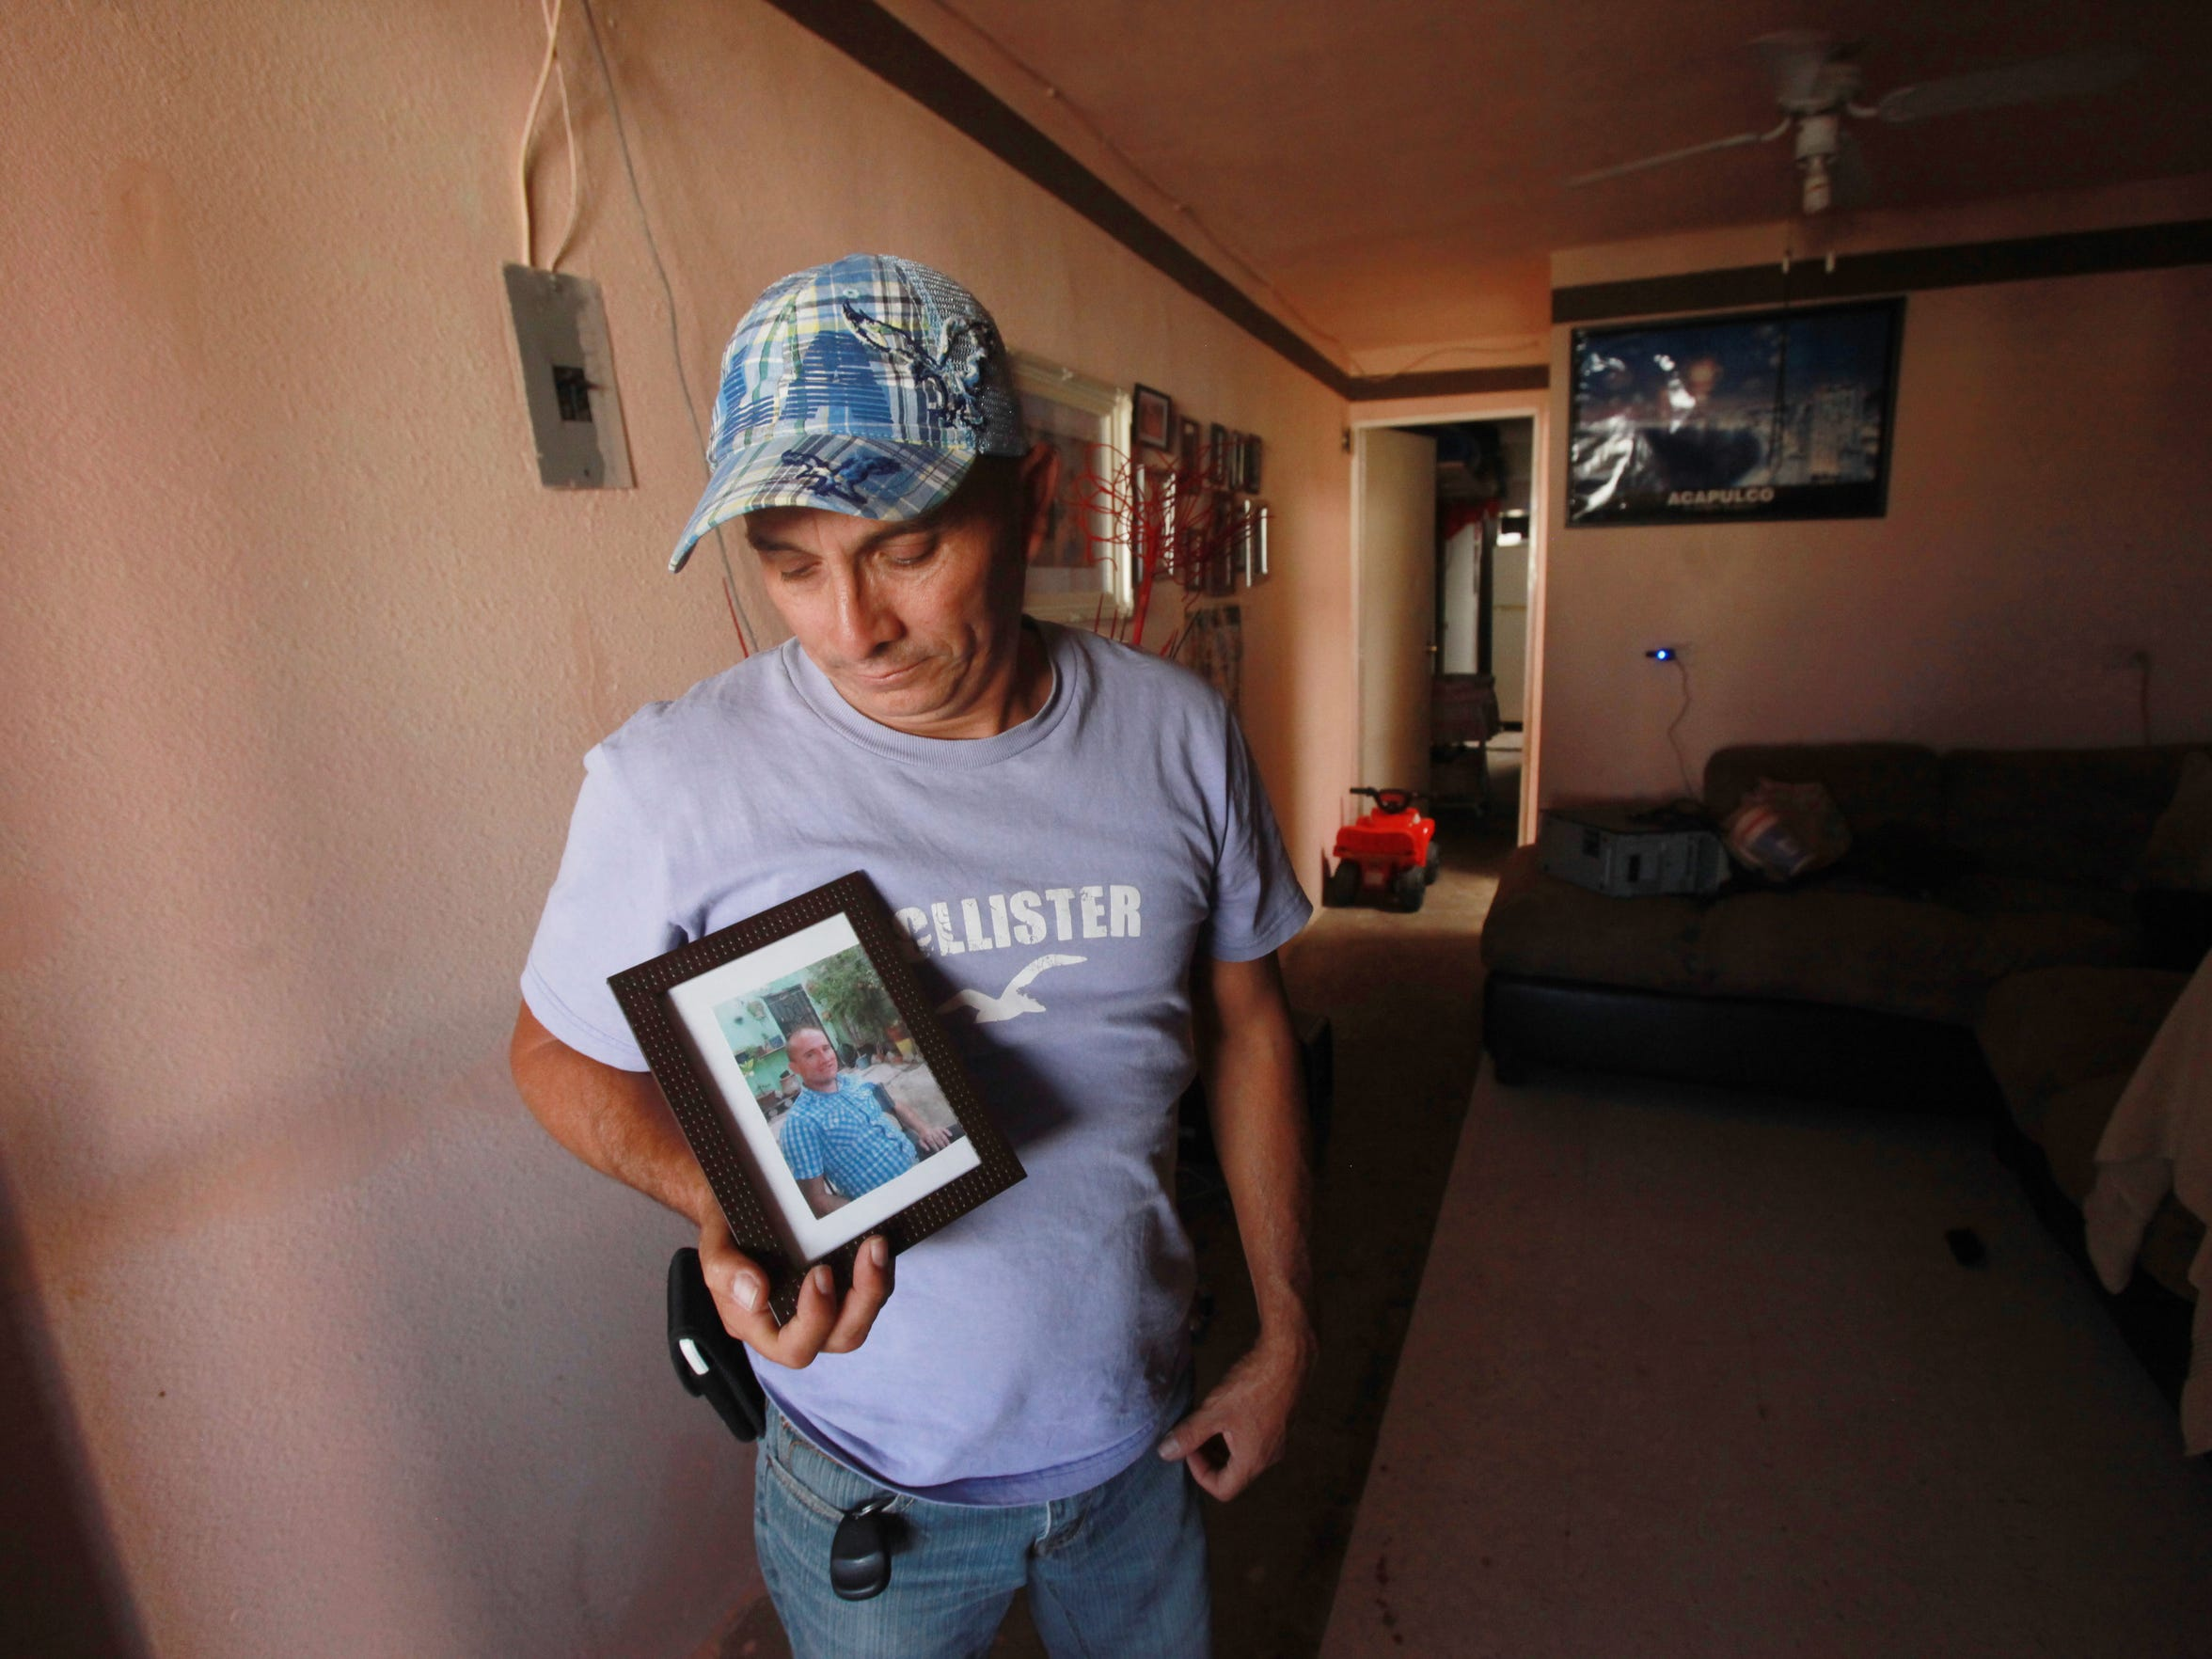 Ricardo Guzman Castaneda holds the photo of his brother-in-law